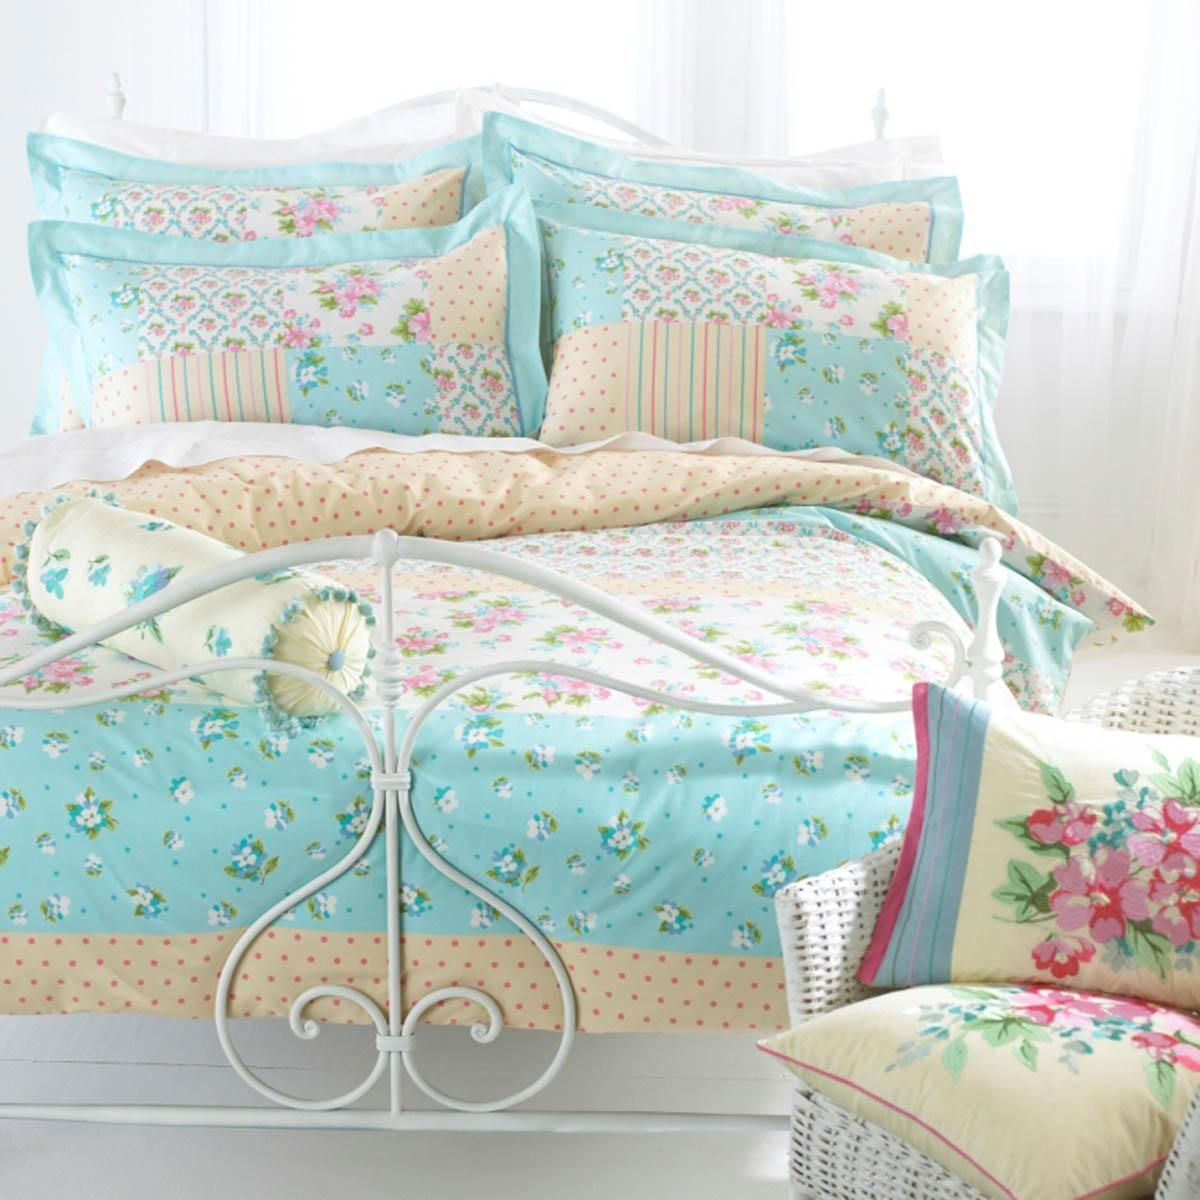 california clearance bedding quilts target collection unique with duvet covers wonderful wicked pictures chic kids and king shabby cheap uk design most on